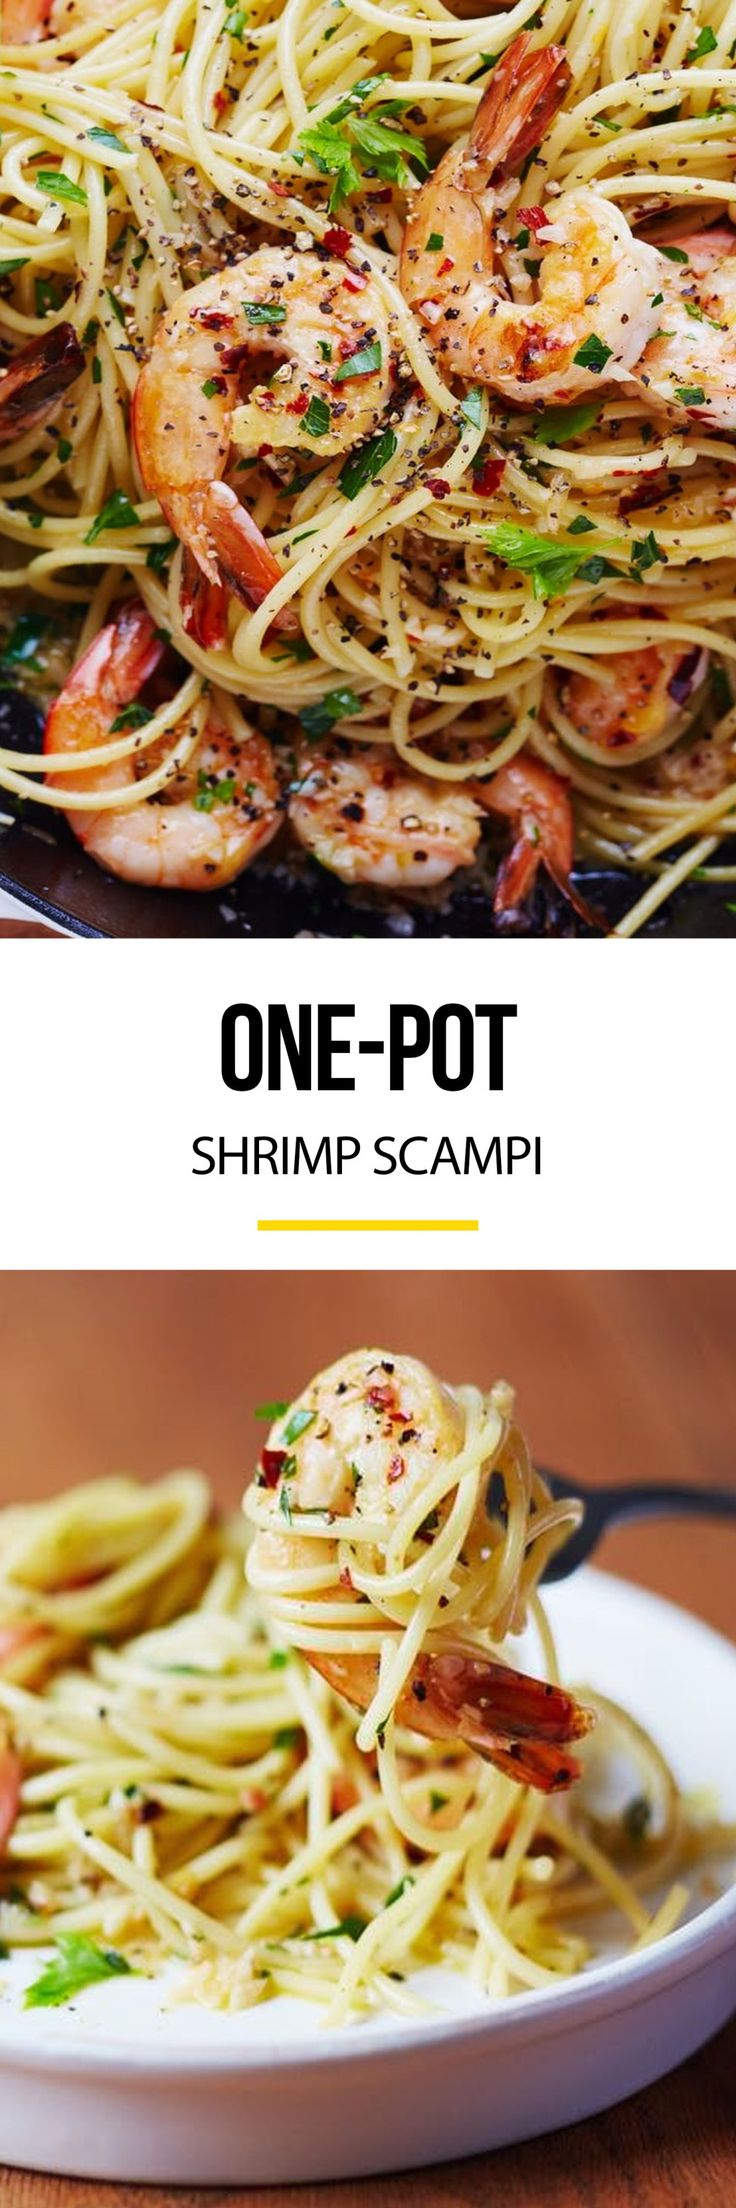 Easy One-Pot Shrimp Scampi Recipe. This is a quick and easy meal or weeknight dinner that ANYONE can master. Get food on the table fast by keep a few simple pantry staples on hand: frozen shrimp, spaghetti (or linguini - whichever pasta you like), butter, parsley, and lemon. Why go to red lobster when you can make this DELICIOUS treat - one of our favorite meals at red lobster - at home any day of the week!?